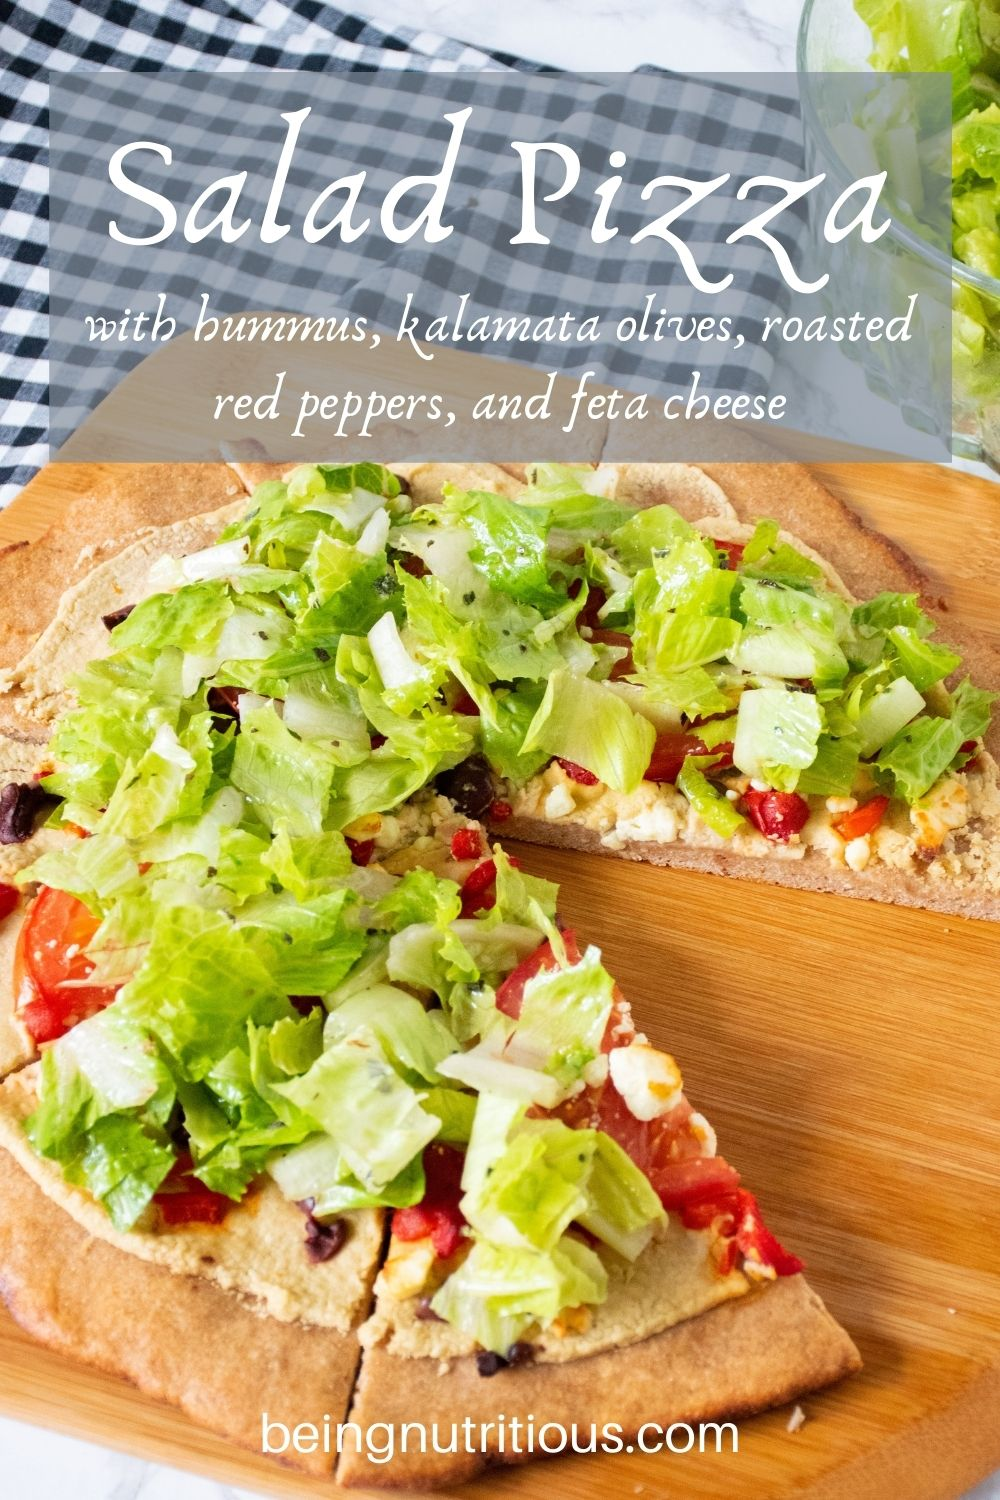 Pizza on a peel, with whole wheat crust, topped with salad. Text overlay: Salad Pizza with hummus, kalamata olives, roasted red peppers, and feta cheese.